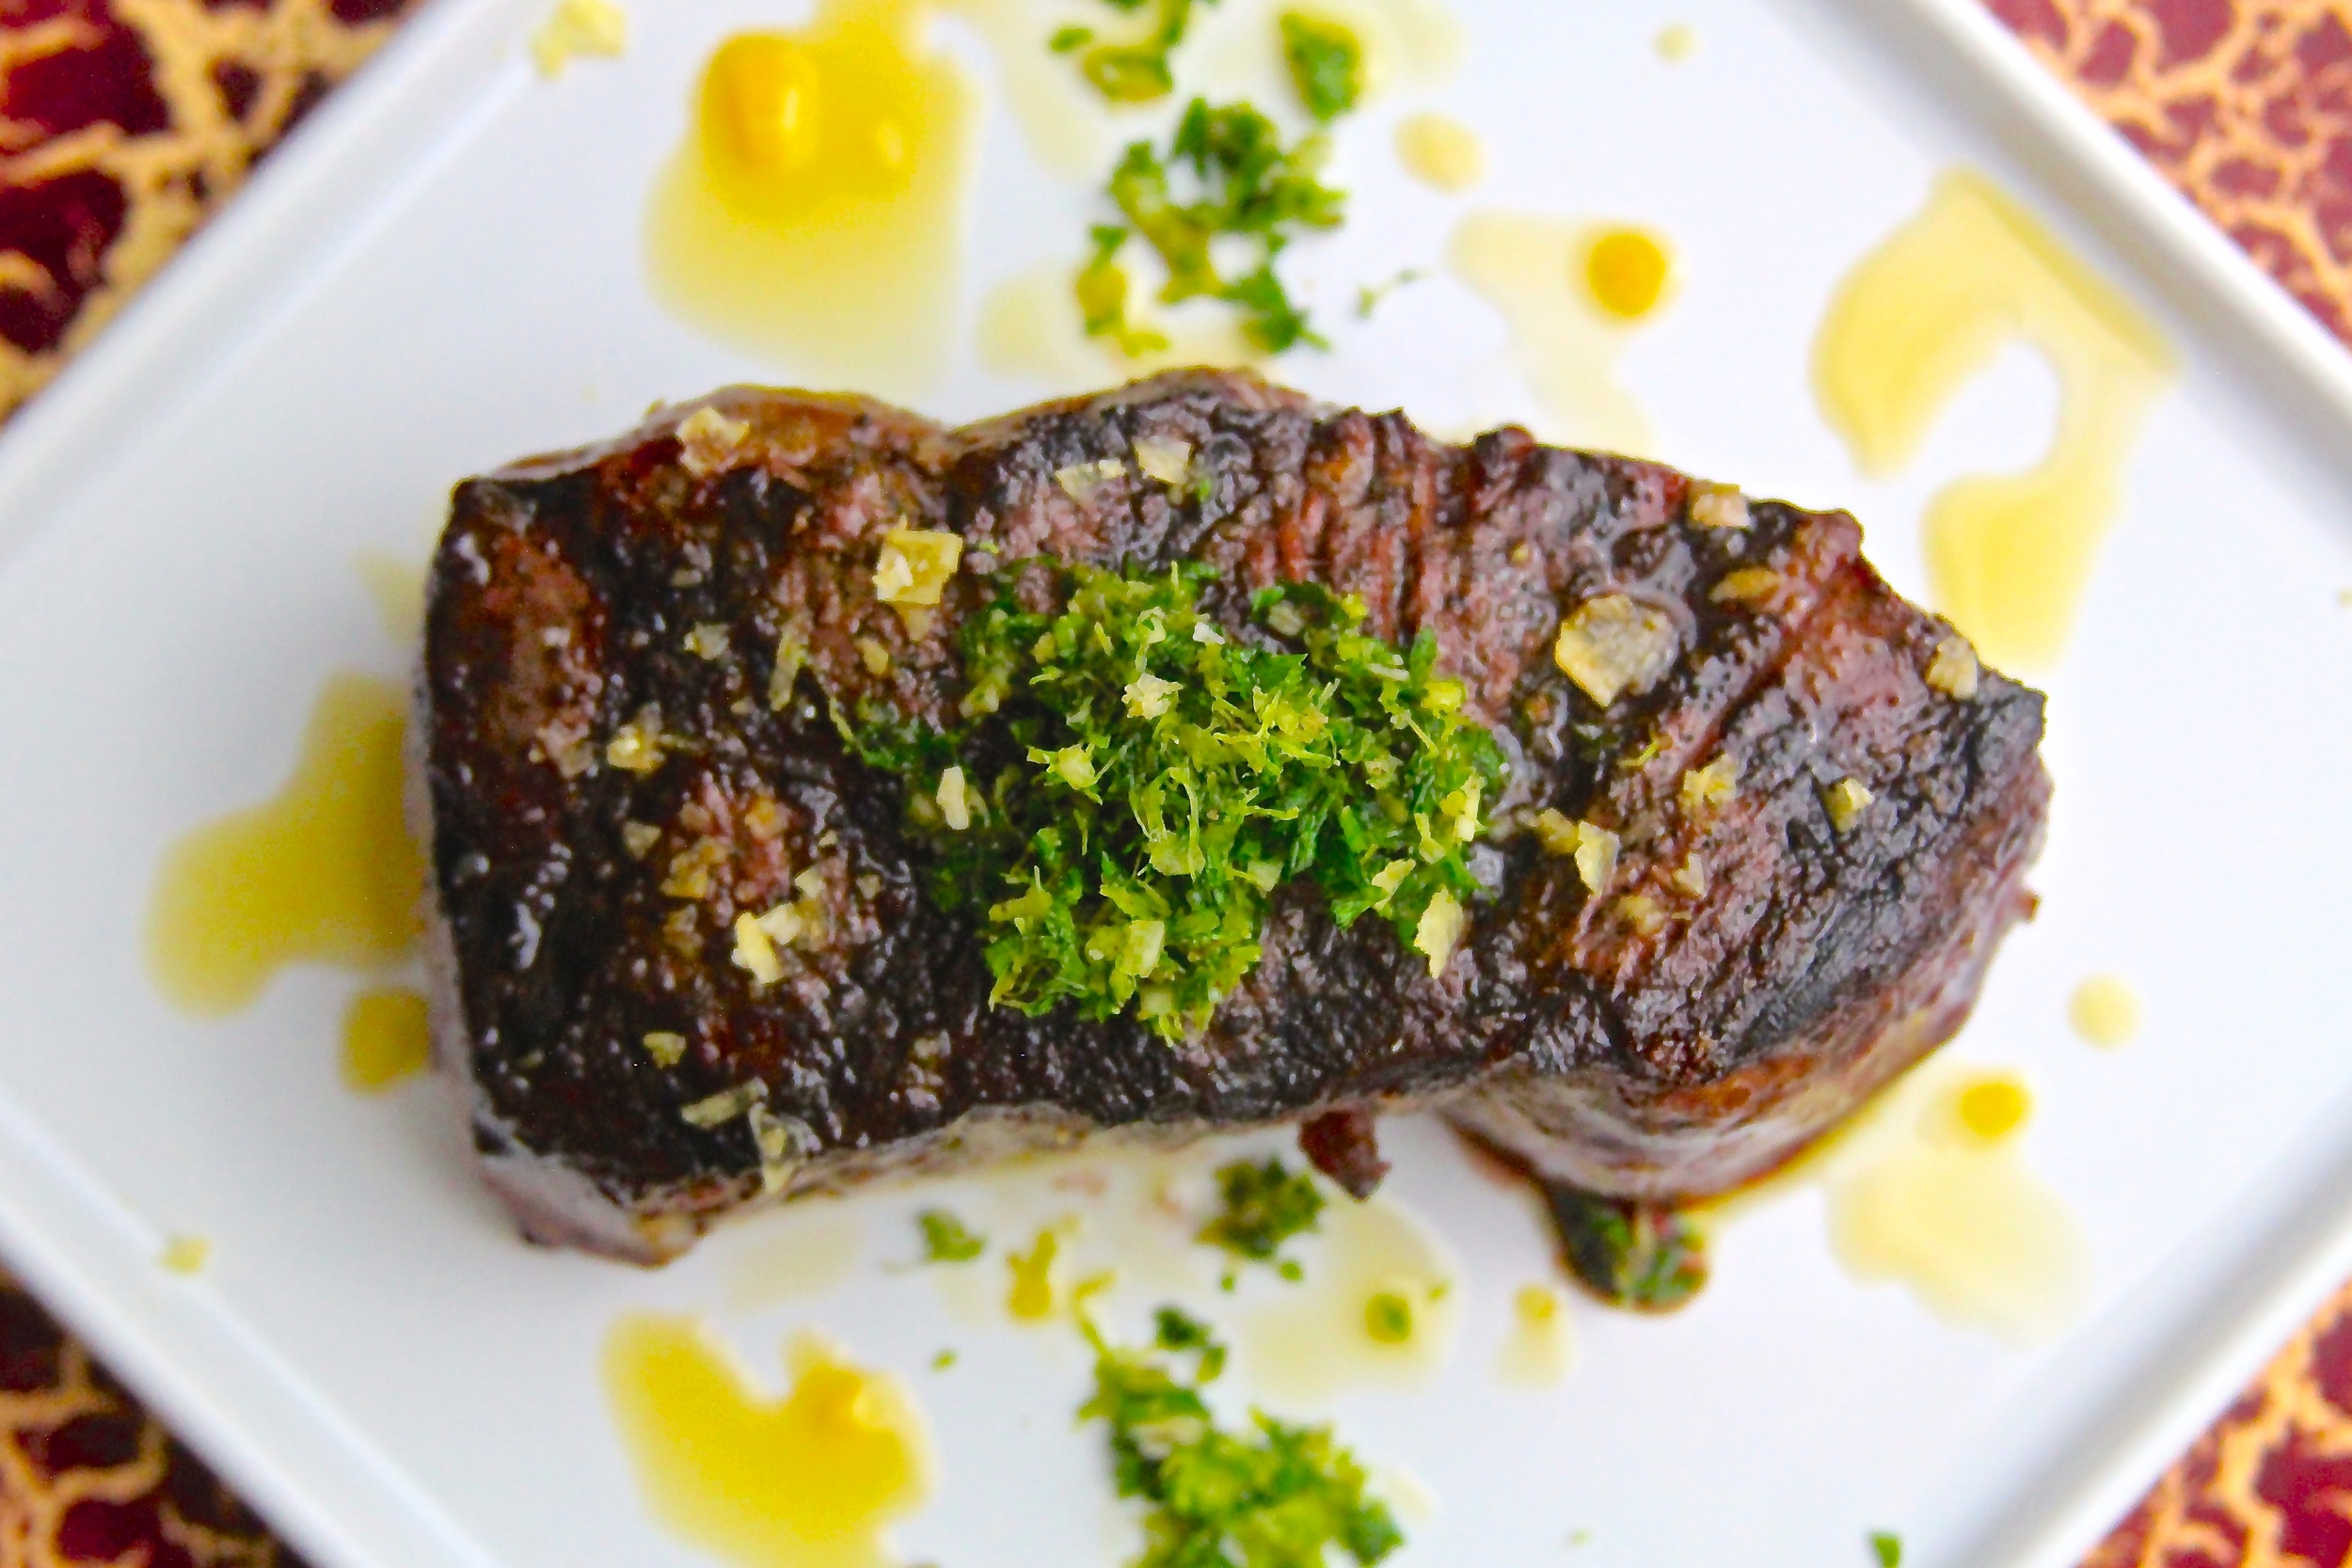 Grilled New York Strip Steak with Gremolata and Chipotle Olive Oil